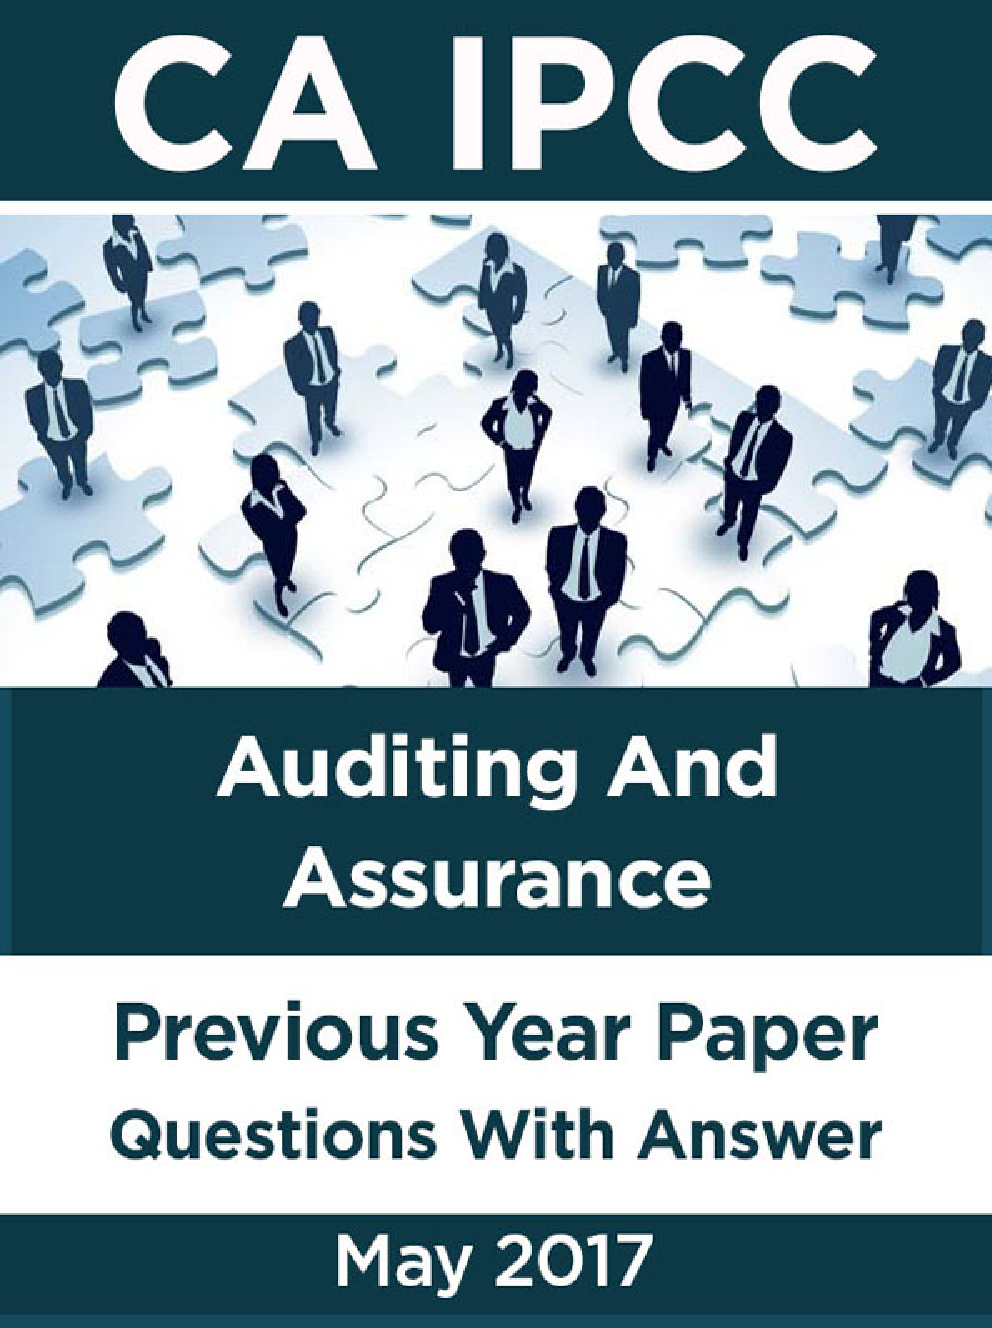 CA IPCC For Auditing And Assurance May 2017 Previous Year Paper Question With Answer - Page 1